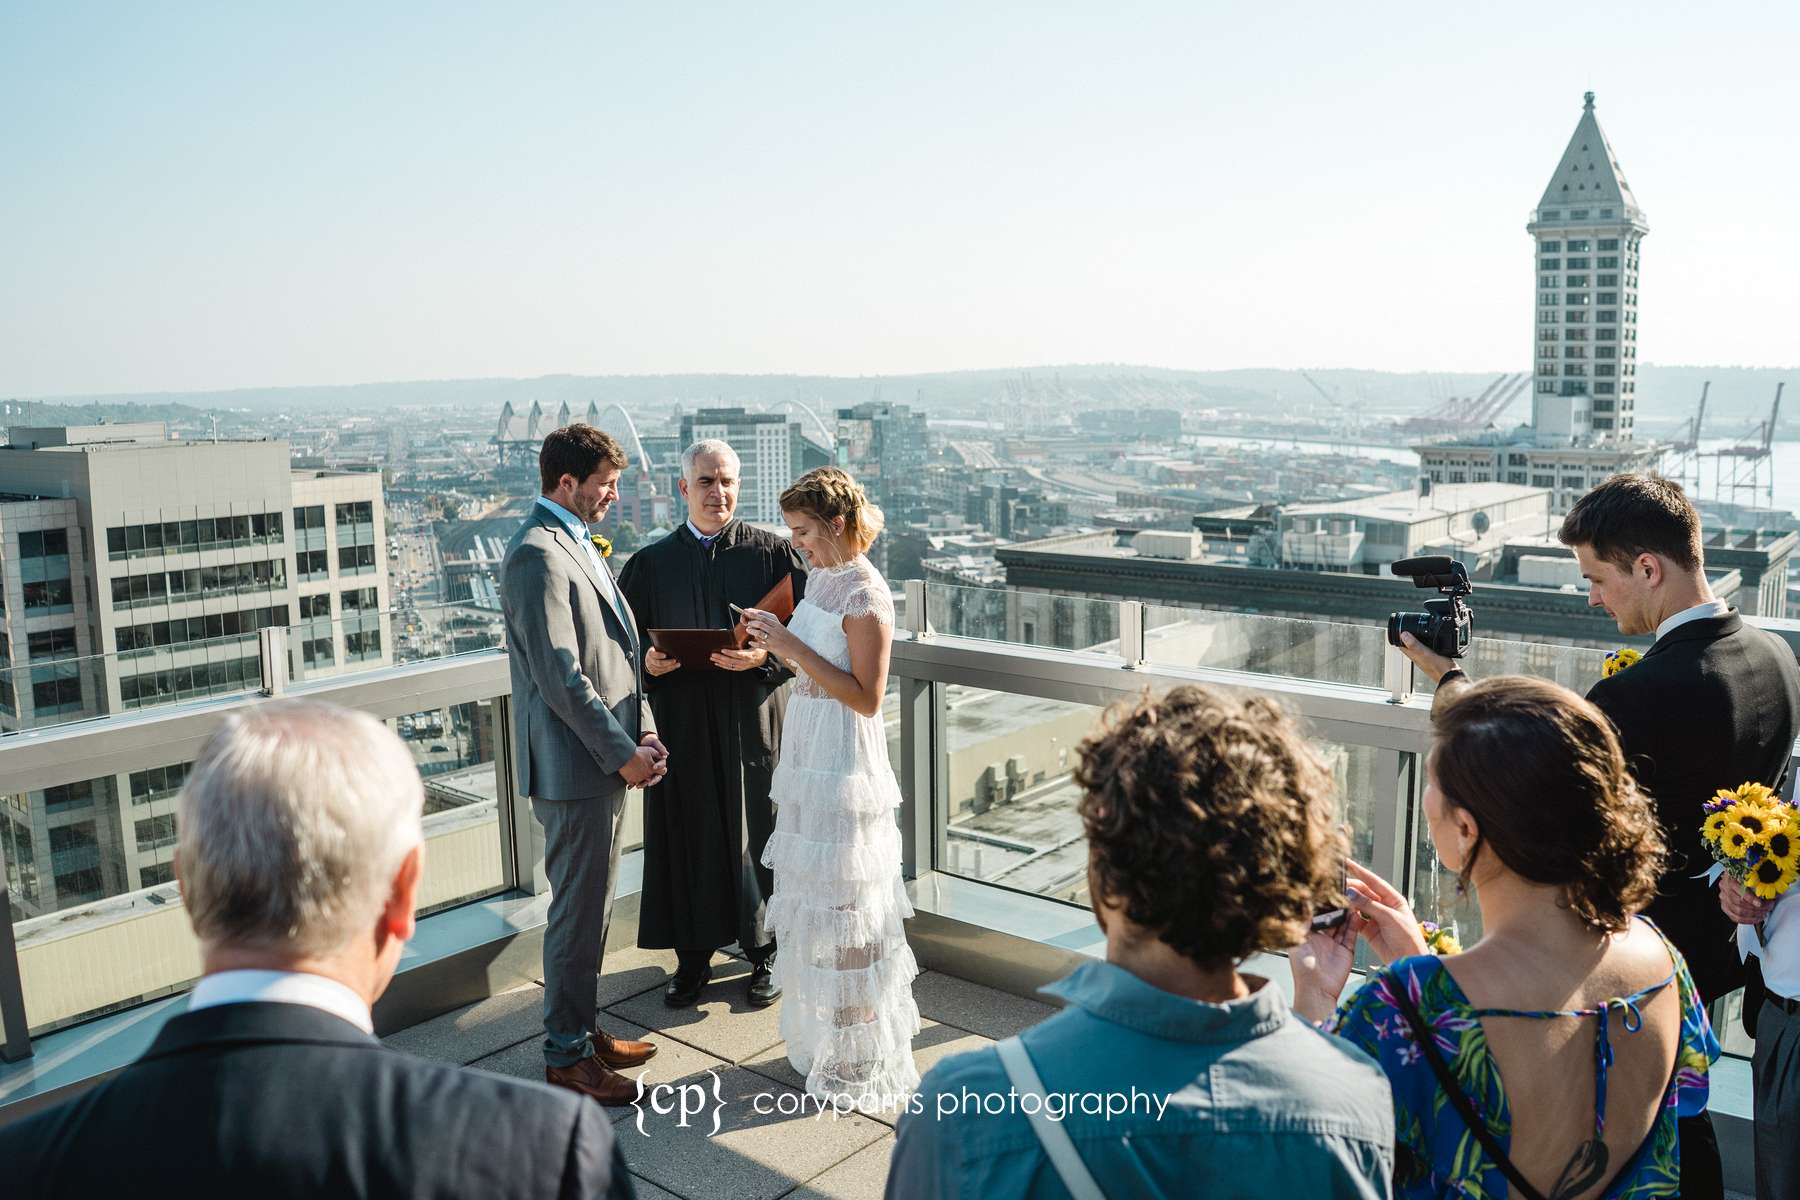 188-Seattle-Elopement-Courthouse.jpg